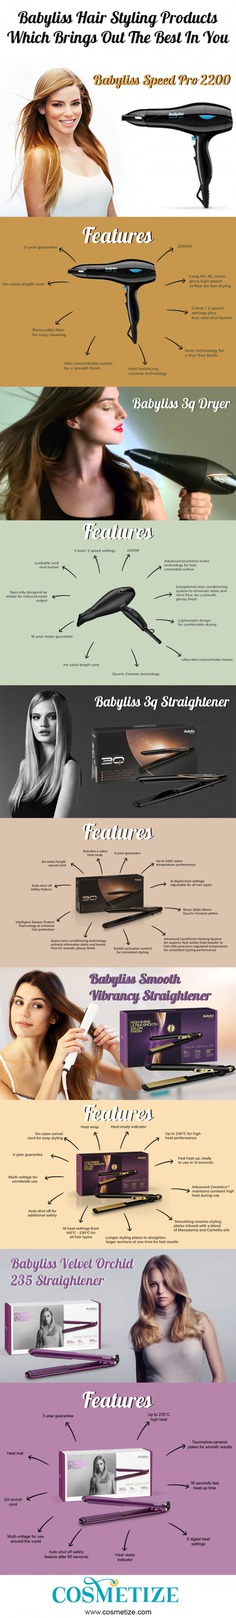 Babyliss Hair Styling Products in UK